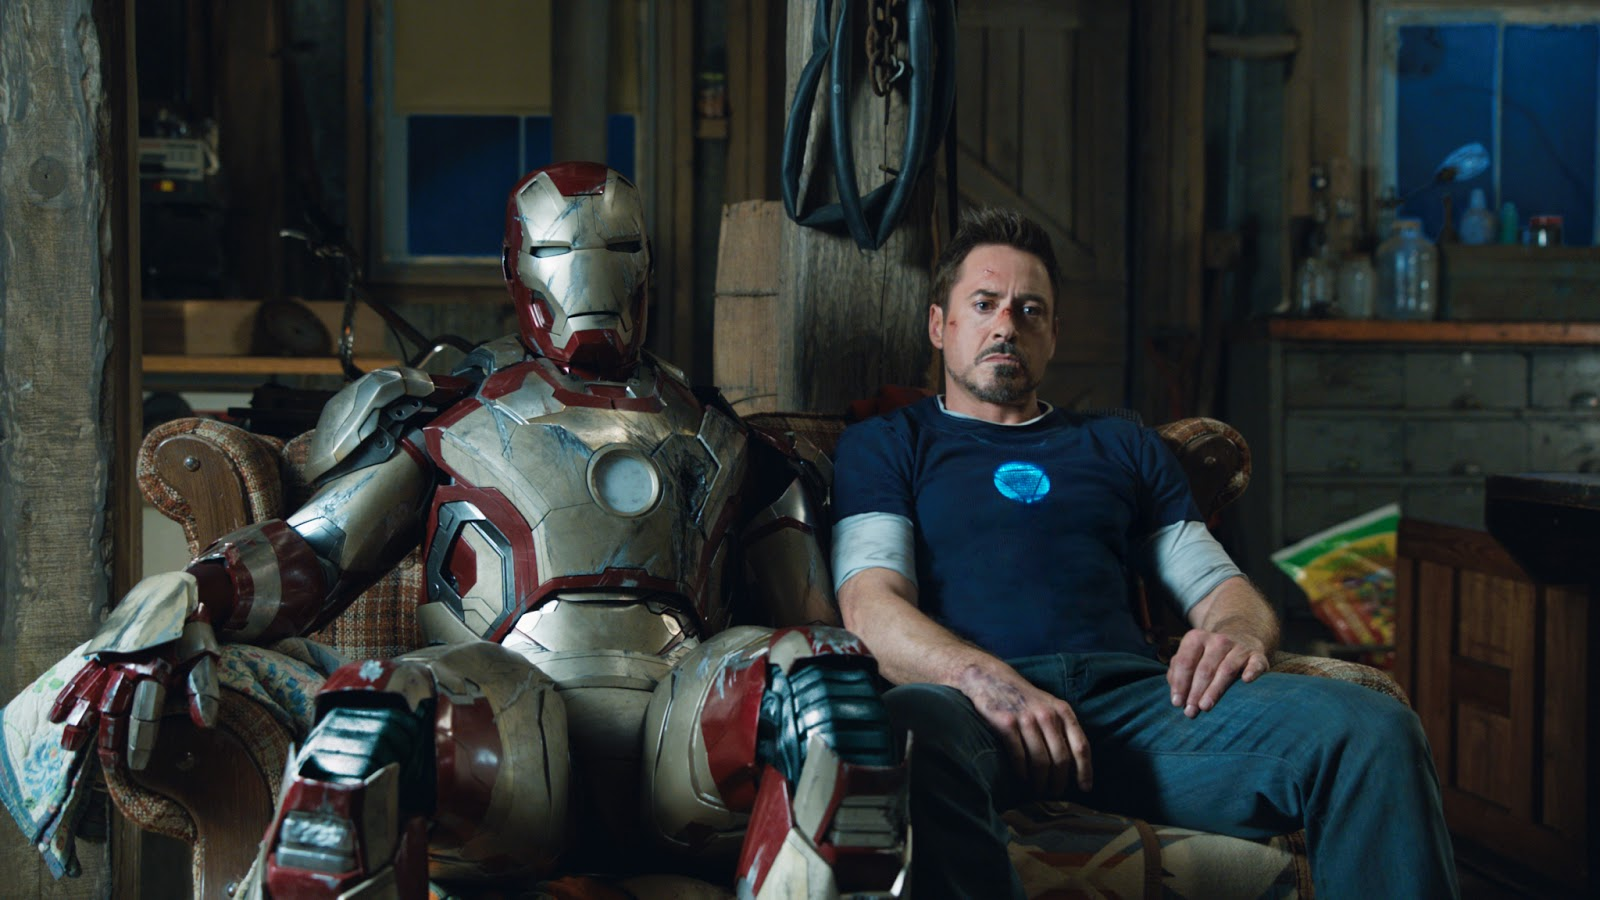 http://www.shockya.com/news/wp-content/uploads/Iron-Man-3-Robert-Downey-Jr-Couch.jpg